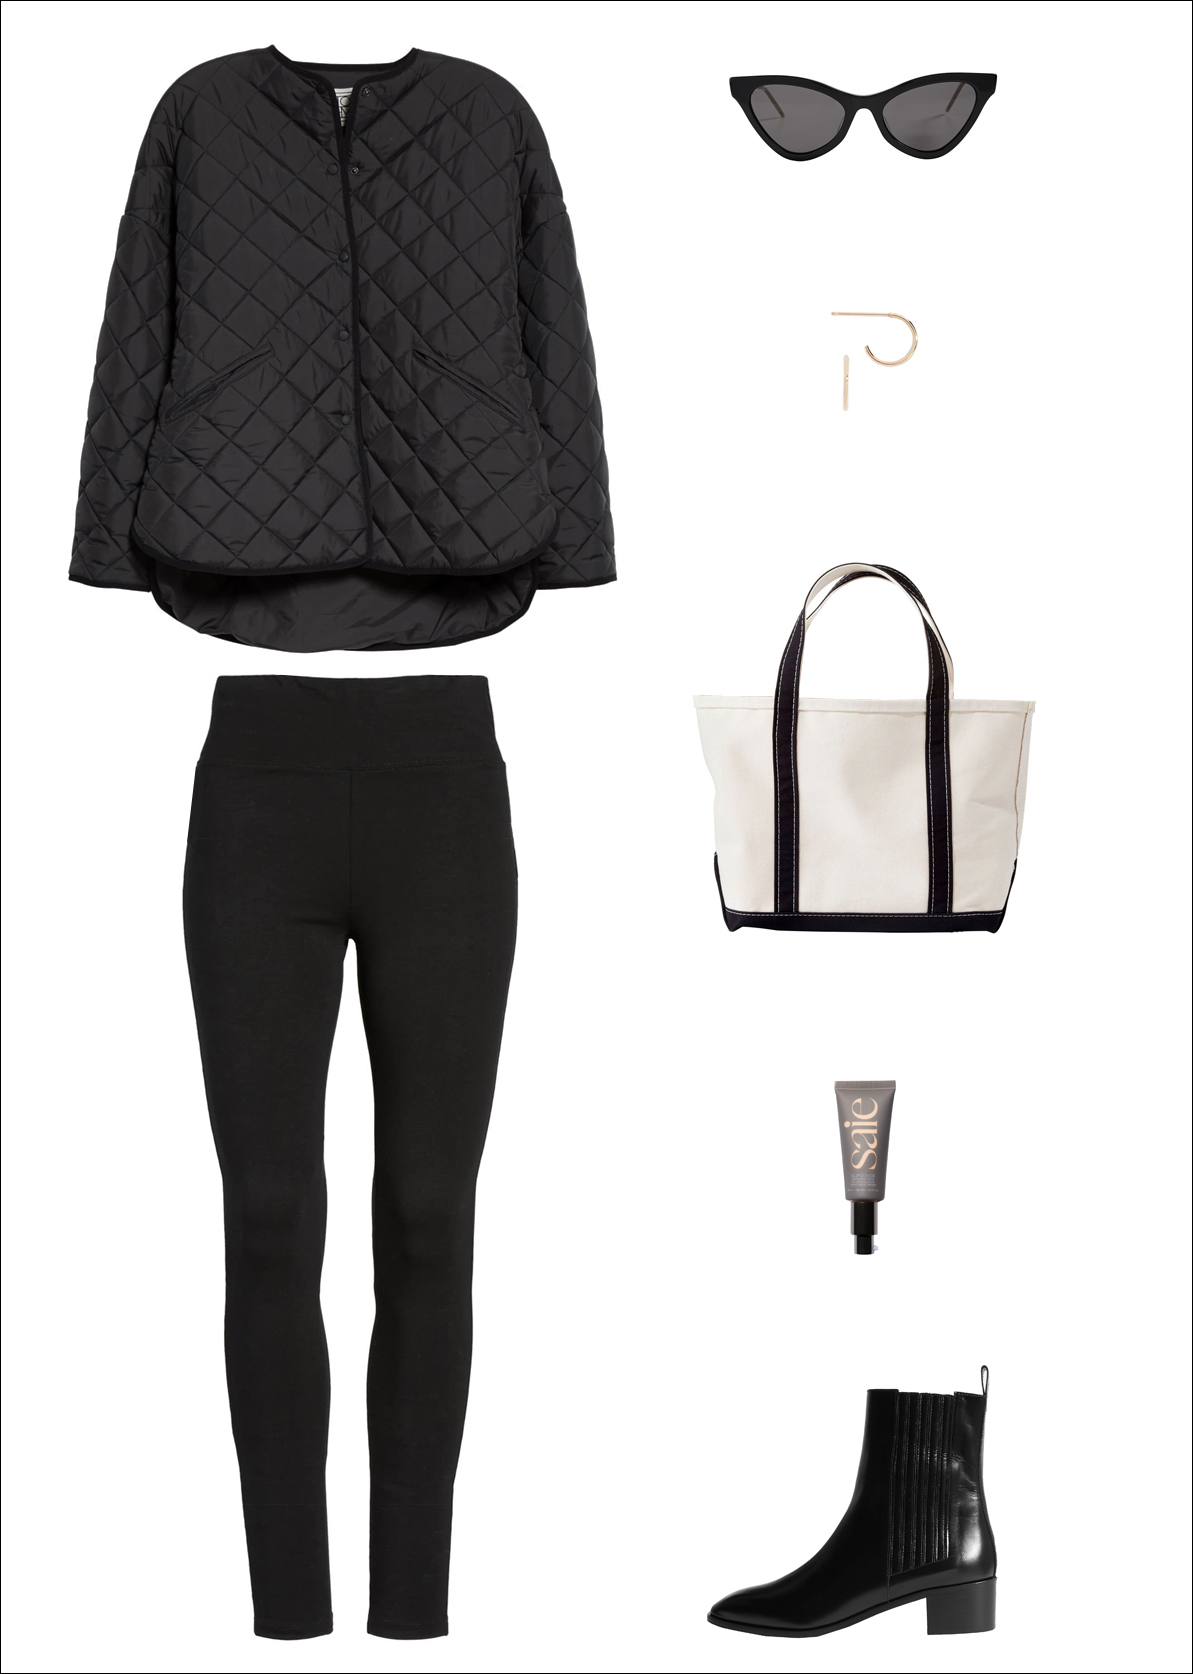 A Stylish Yet Comfortable Outfit for Running Errands — Fall Weekend Look With a Toteme Quilted Jacket, Cat-Eye Sunglasses, Small Hoop Earrings, L.L. Bean Tote Bag, Black Leggings, Saie Tinted Moisturizer and Aeyde Chelsea Boots